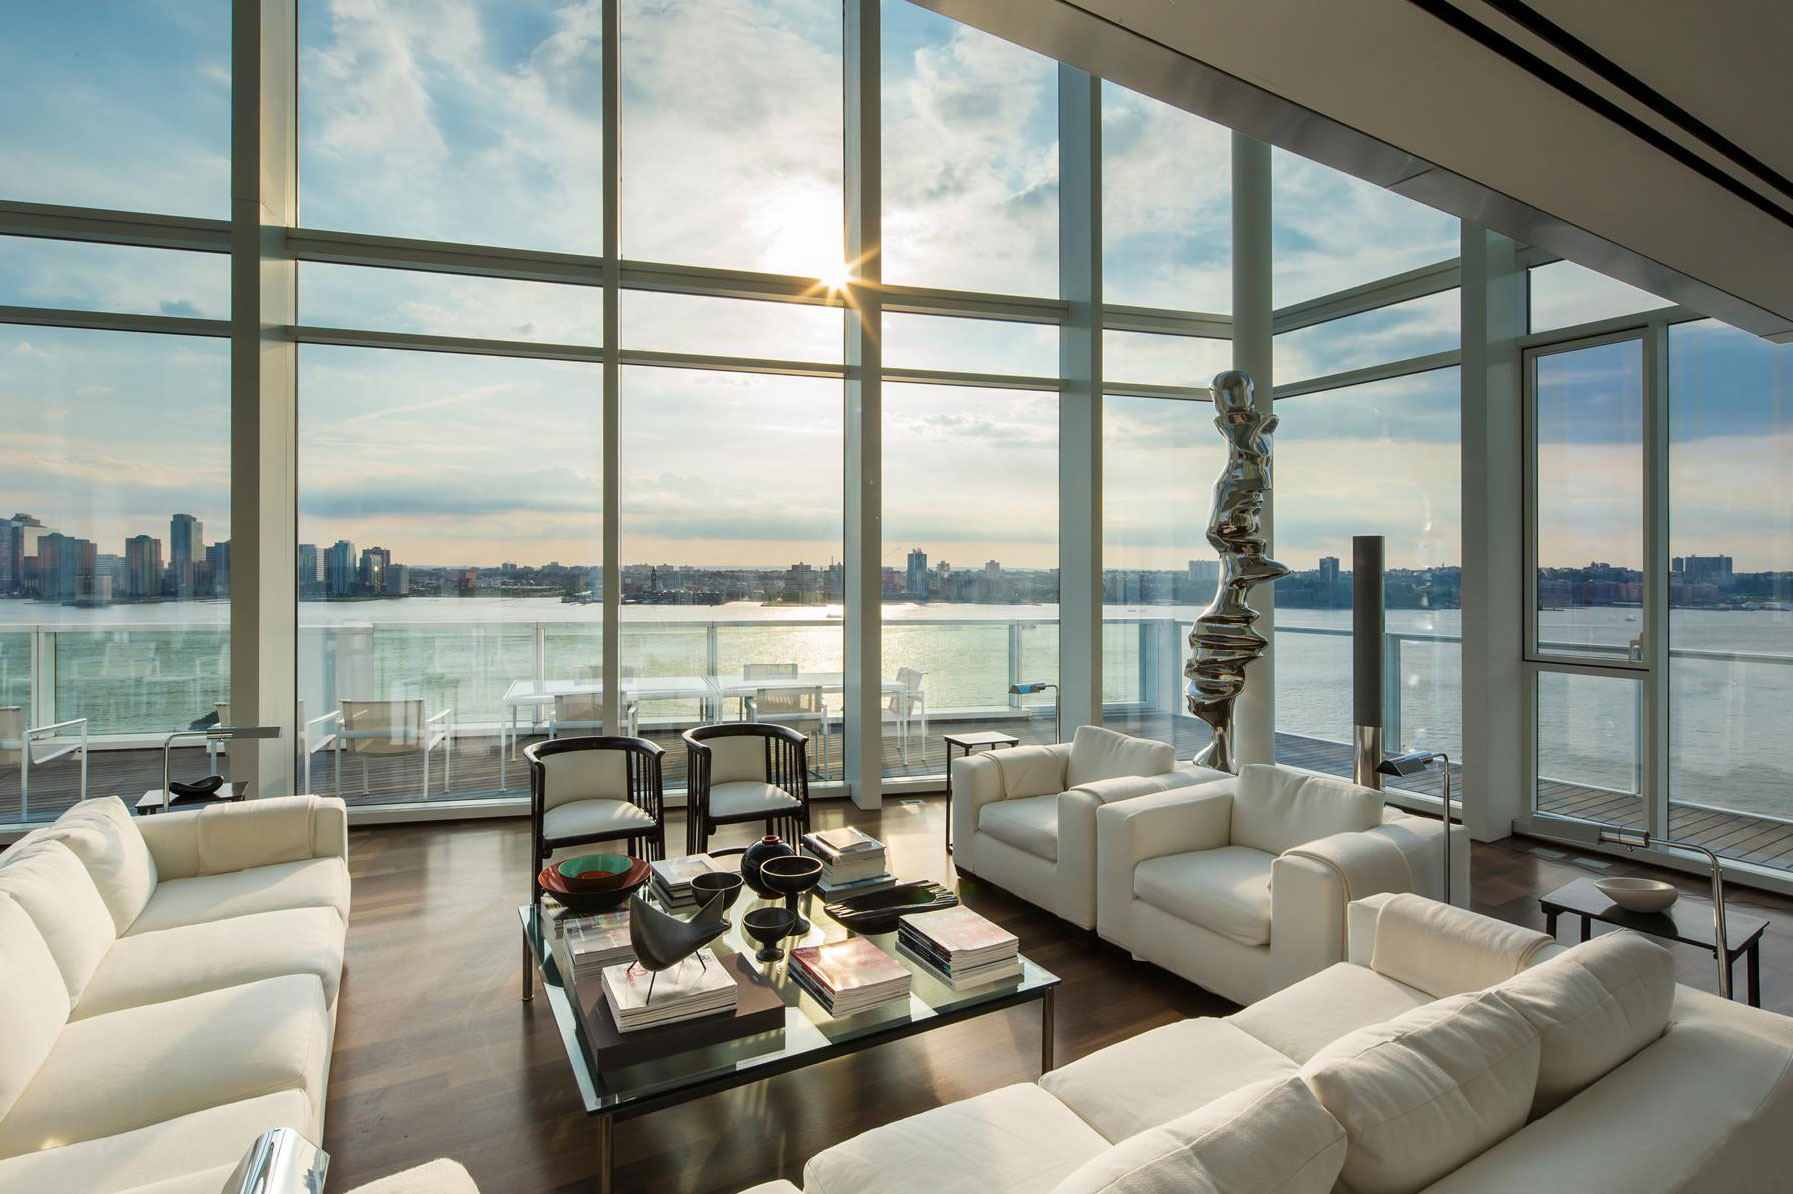 Sofas-Glass-Coffee-Table-Floor-to-Ceiling-Windows-Hudson-River-Apartment-Manhattan